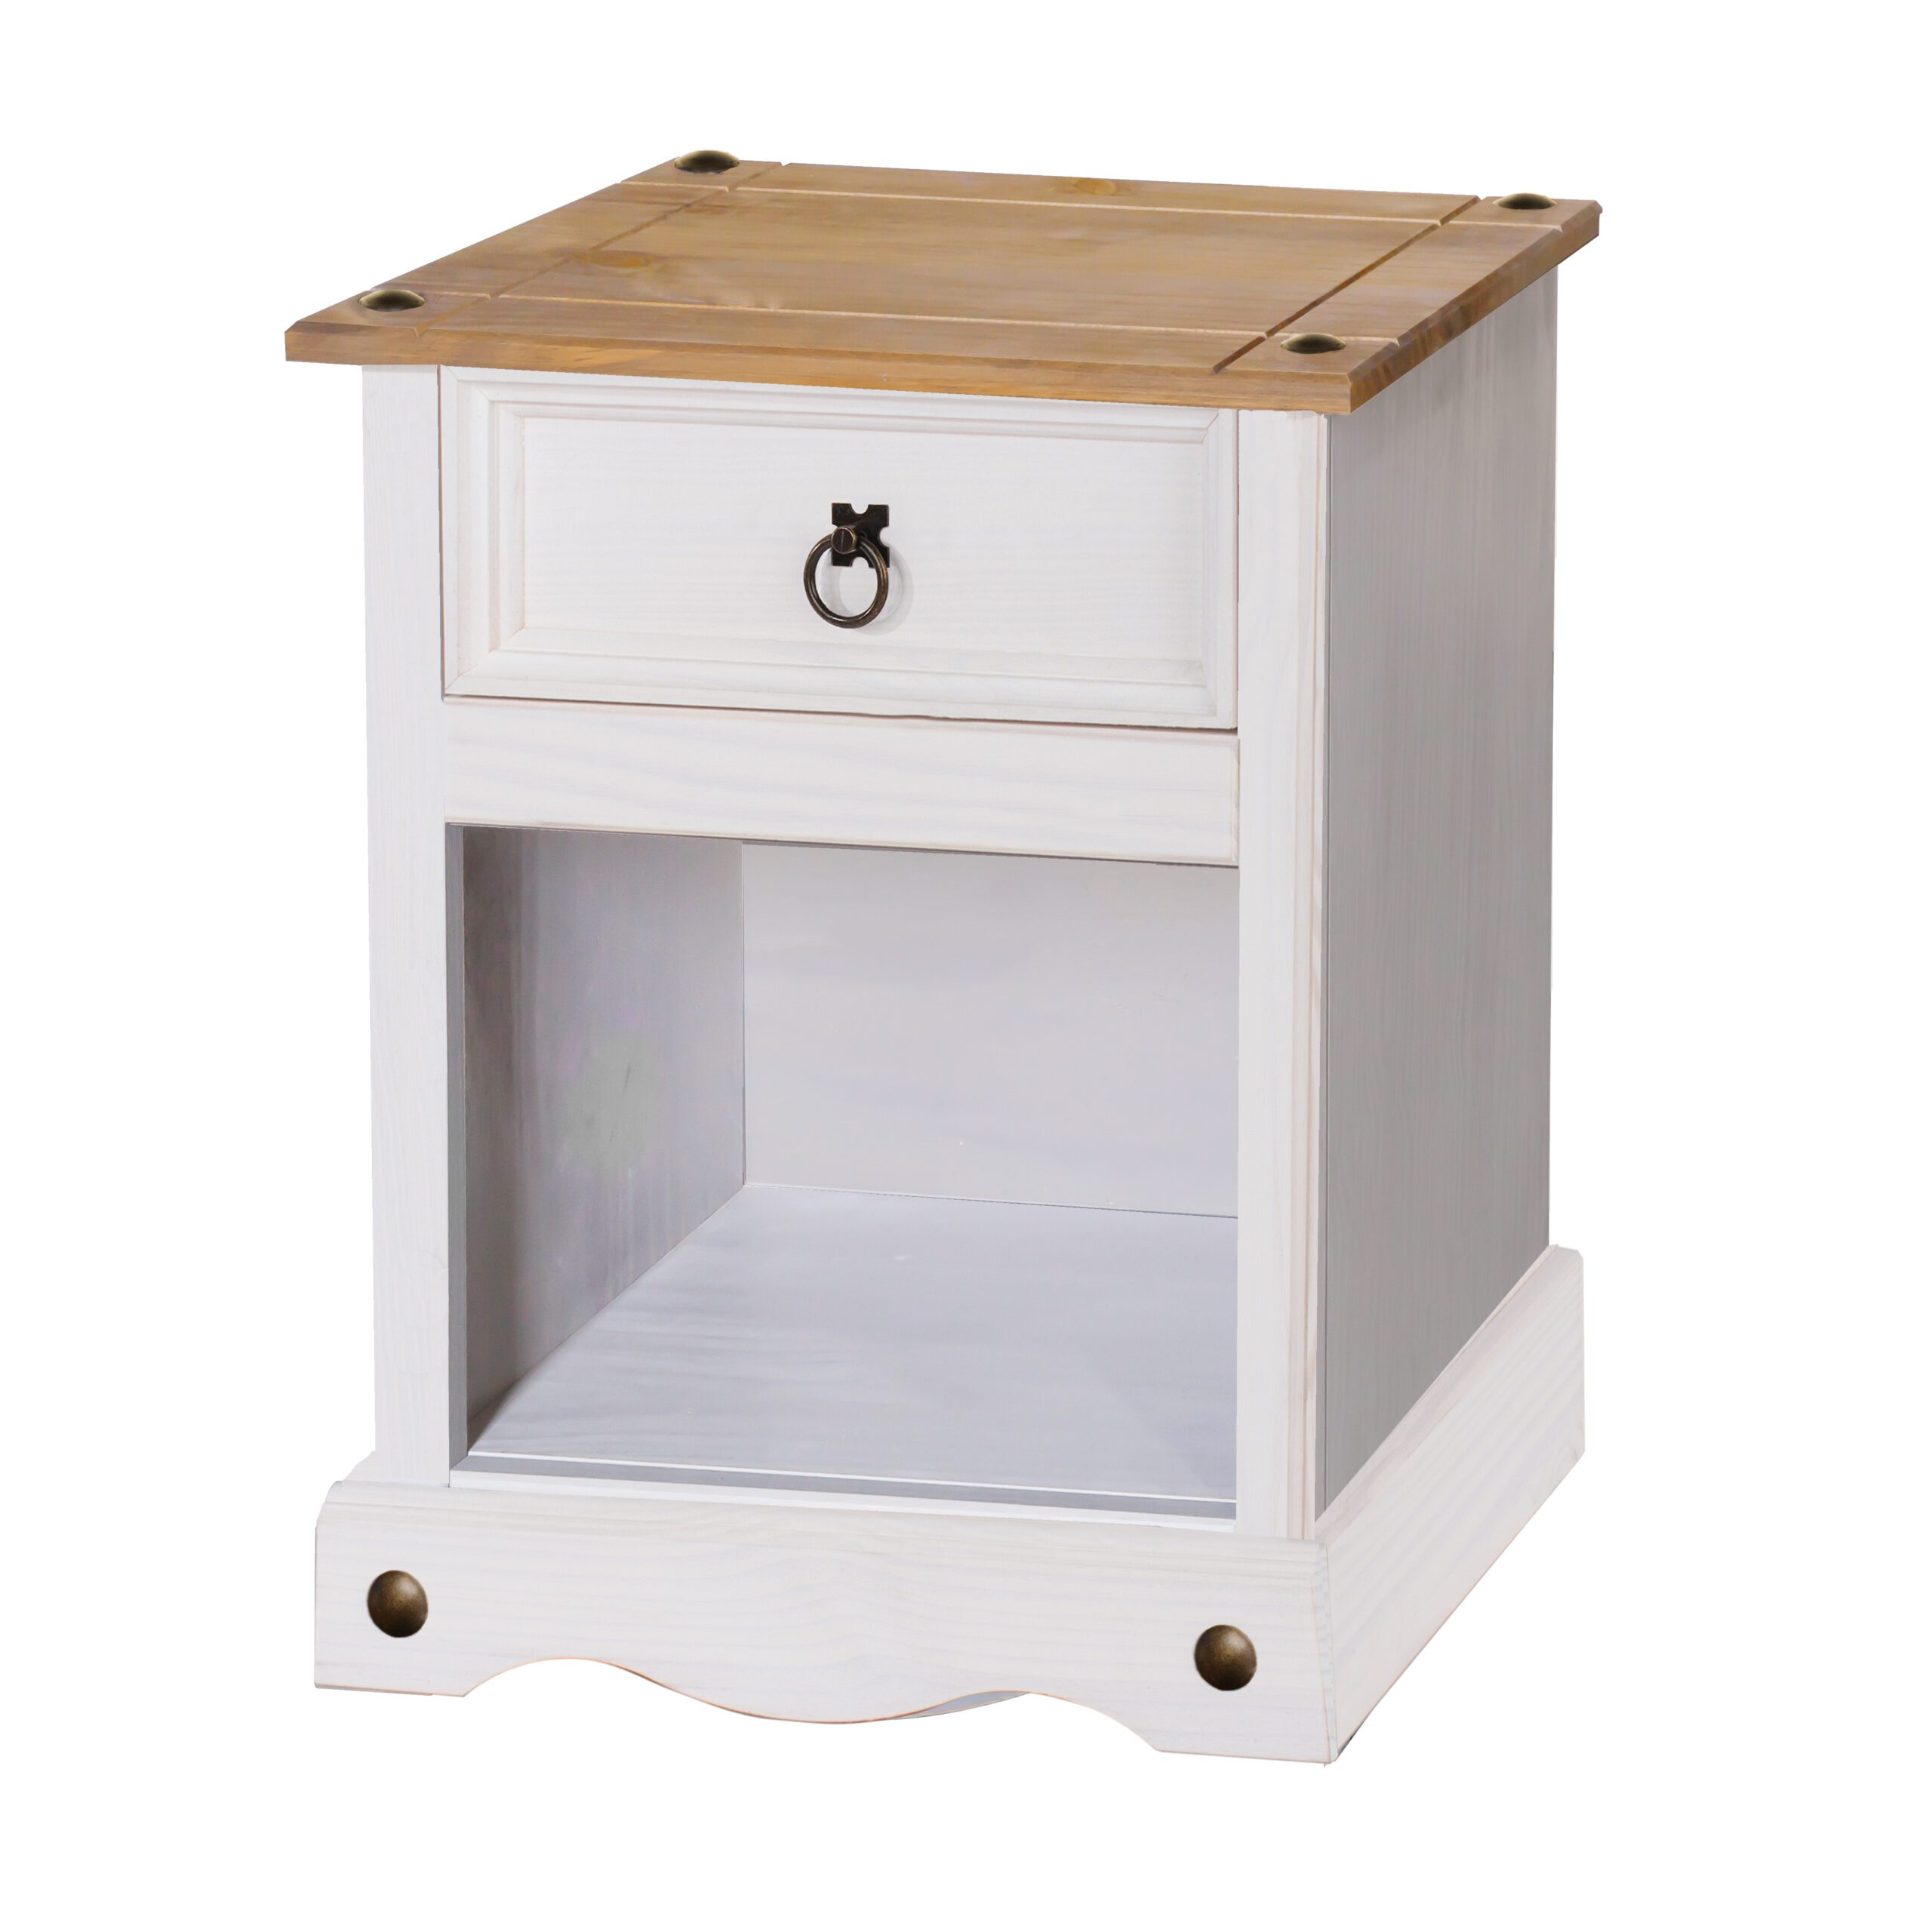 Lavan 1 drawer bedside cabinet (non dovetail drawer)